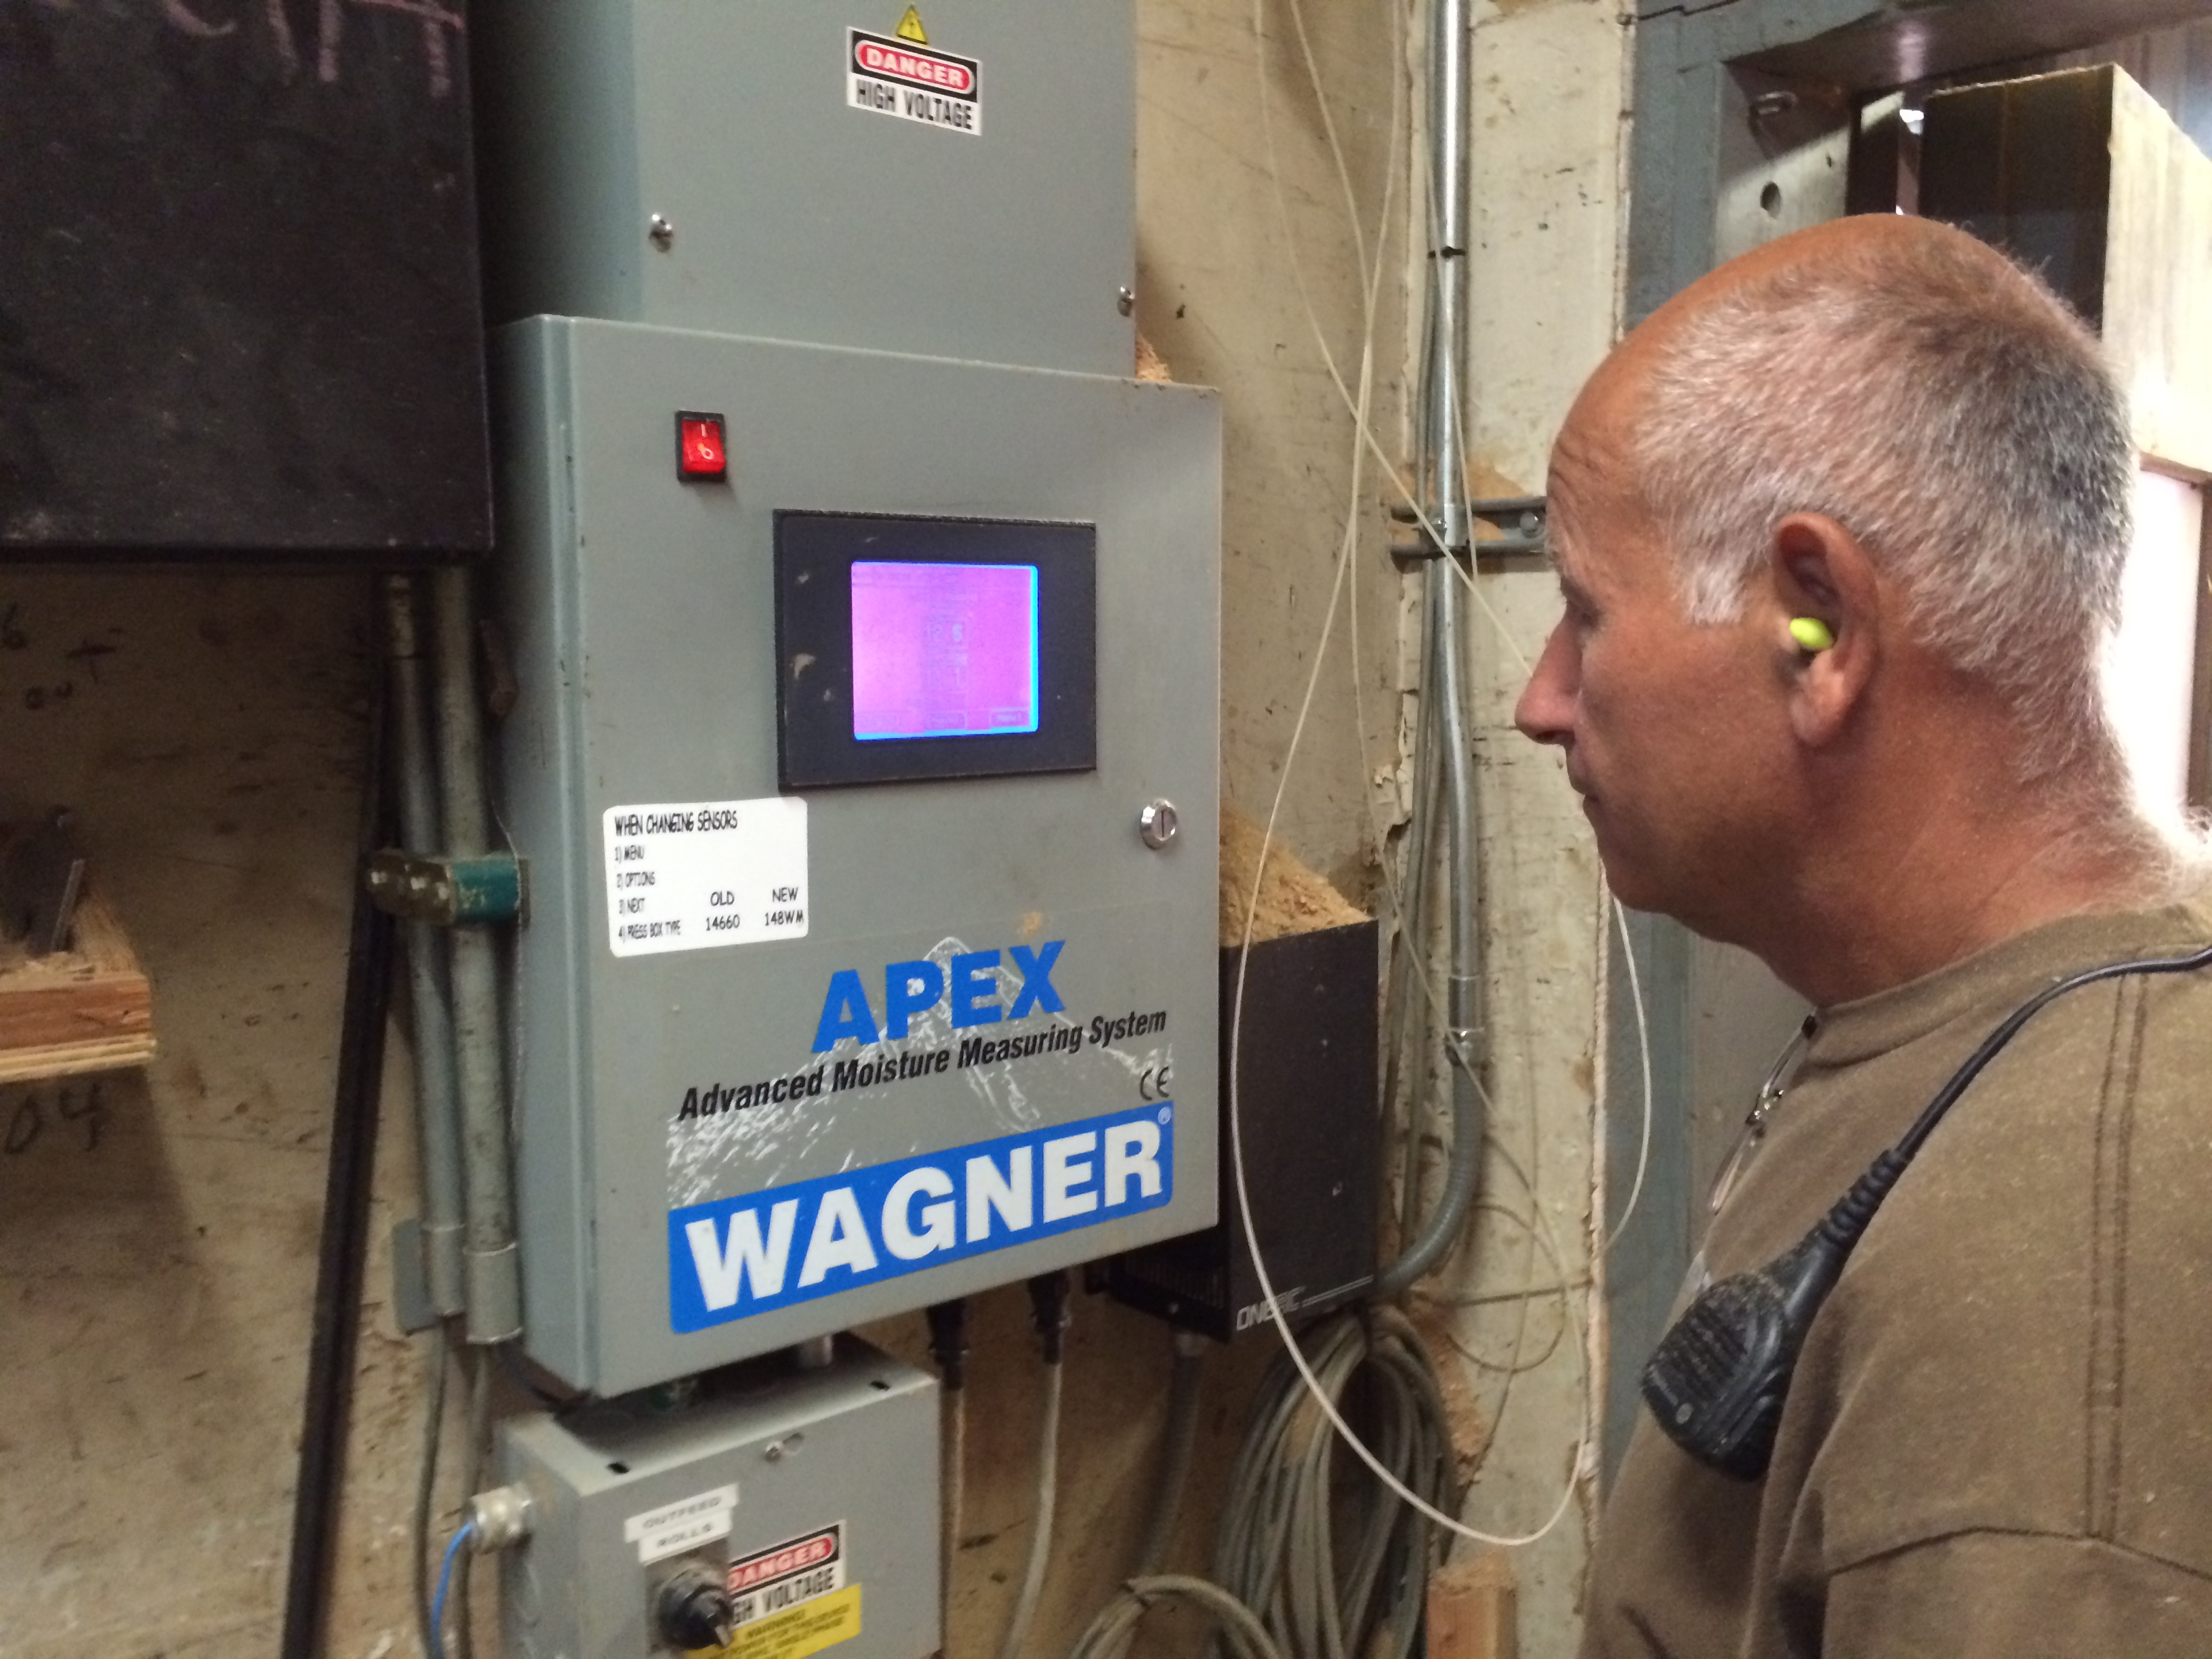 Manke Lumber Company Apex moisture measurment system